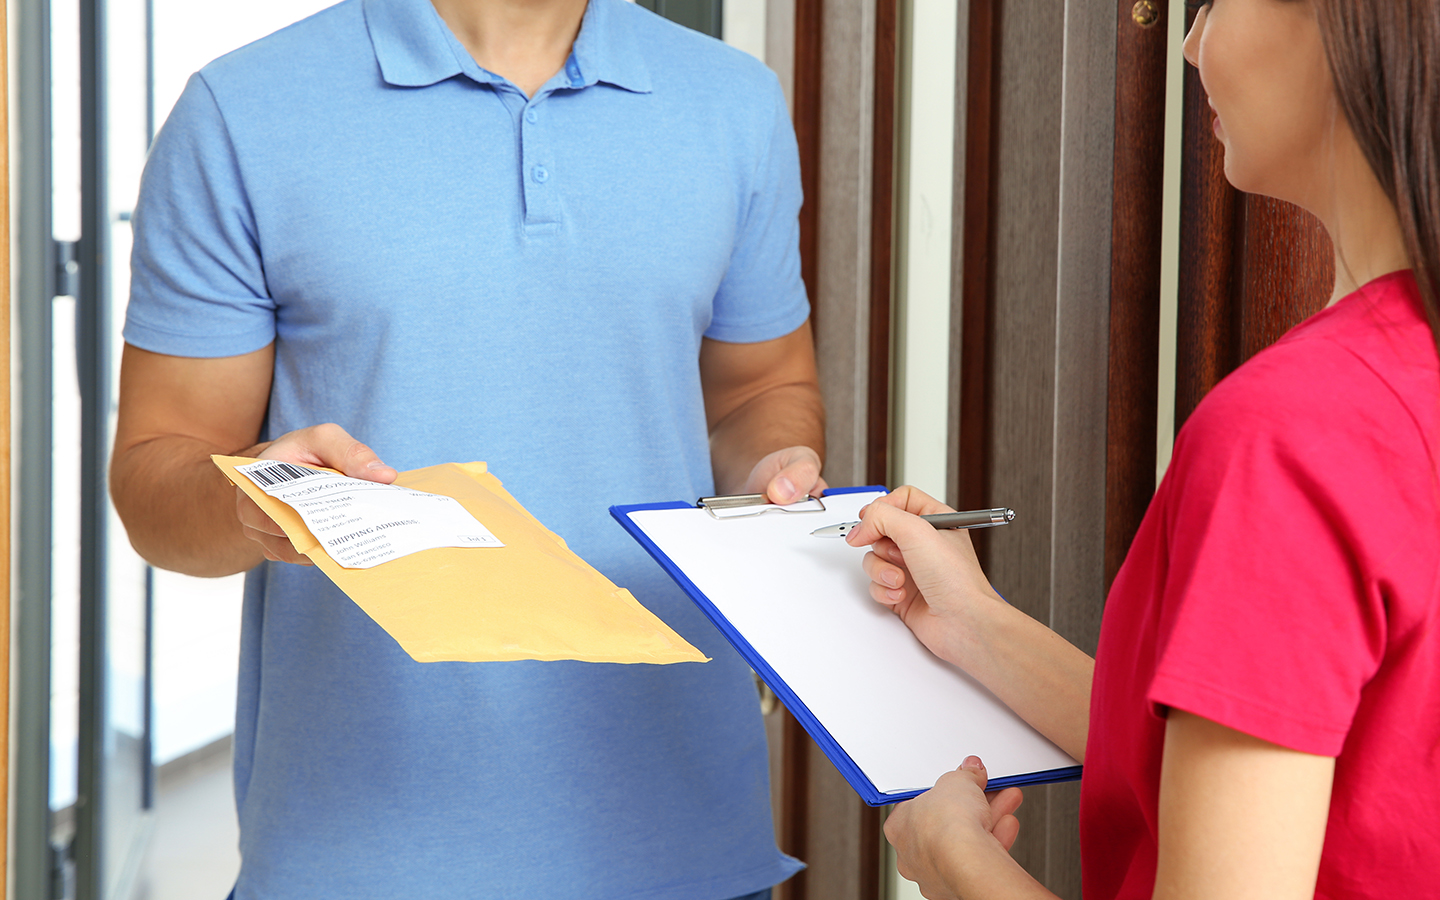 Woman receiving a package from a courier service